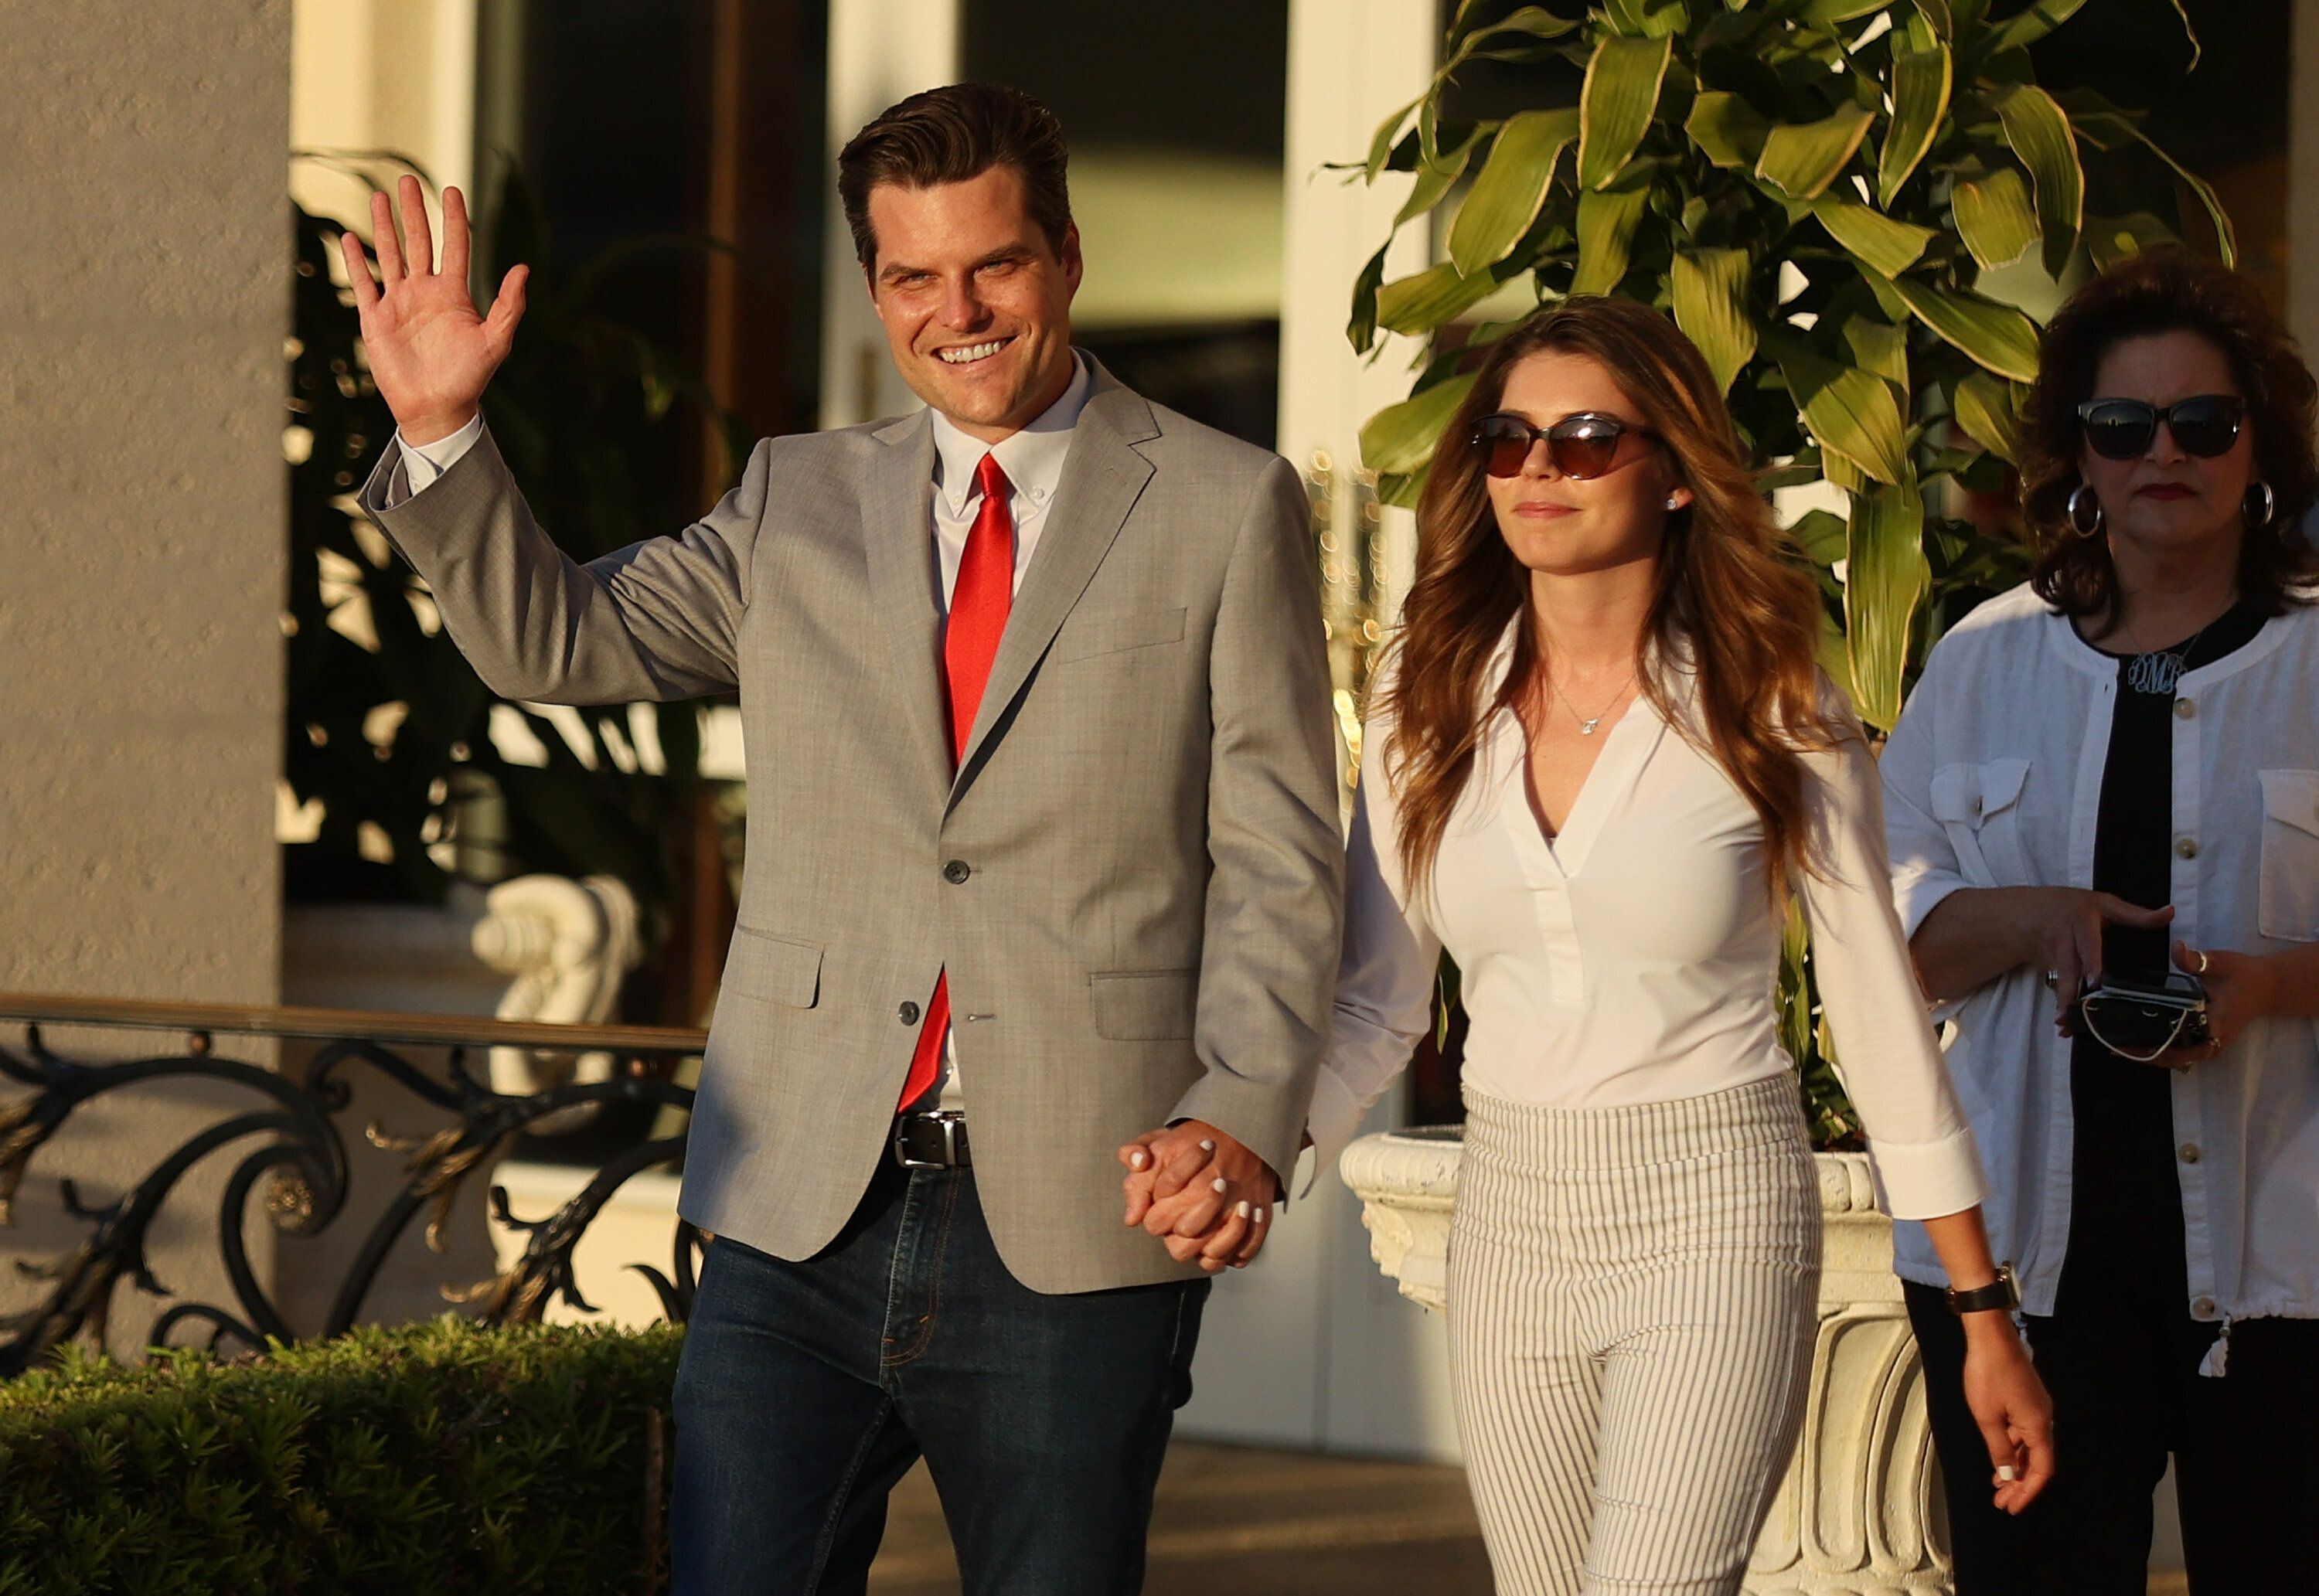 Rep. Matt Gaetz is seen with his then-girlfriend, Ginger Luckey, at the Trump National Doral golf resort in Doral, Florida on